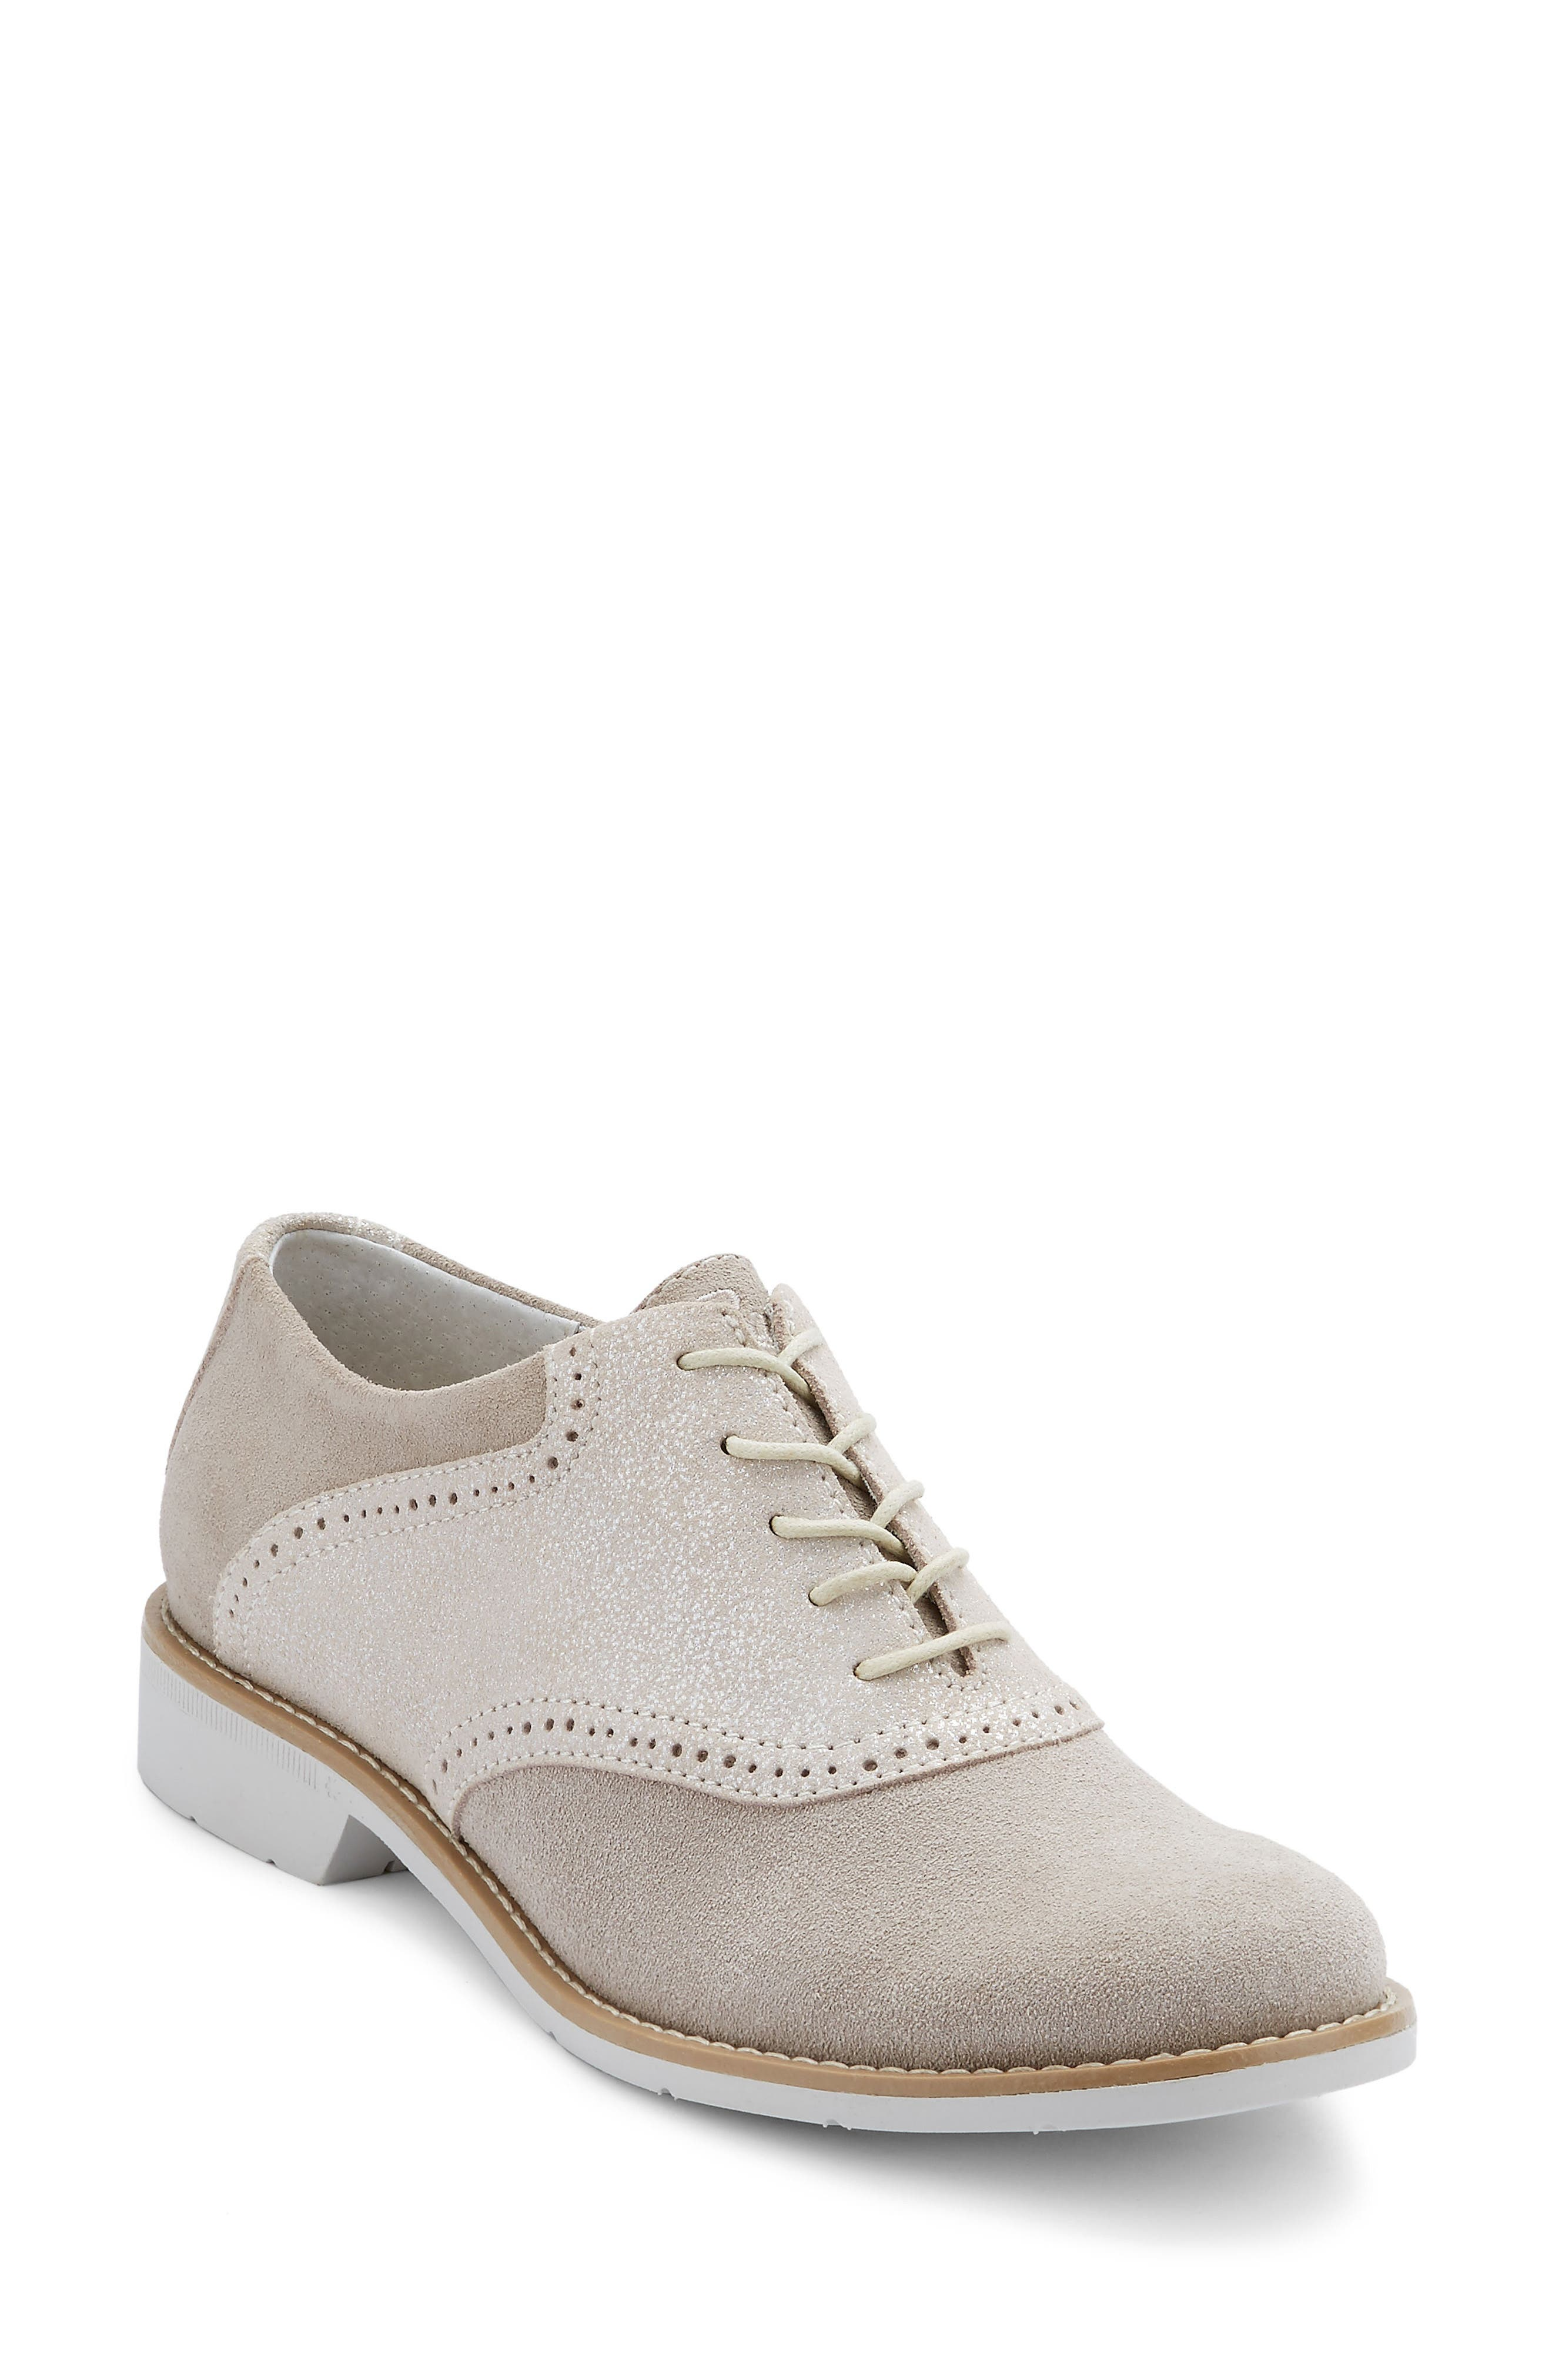 G.H. Bass and Co. Dora Lace-Up Oxford,                             Main thumbnail 1, color,                             Soft Grey/ Silver Suede